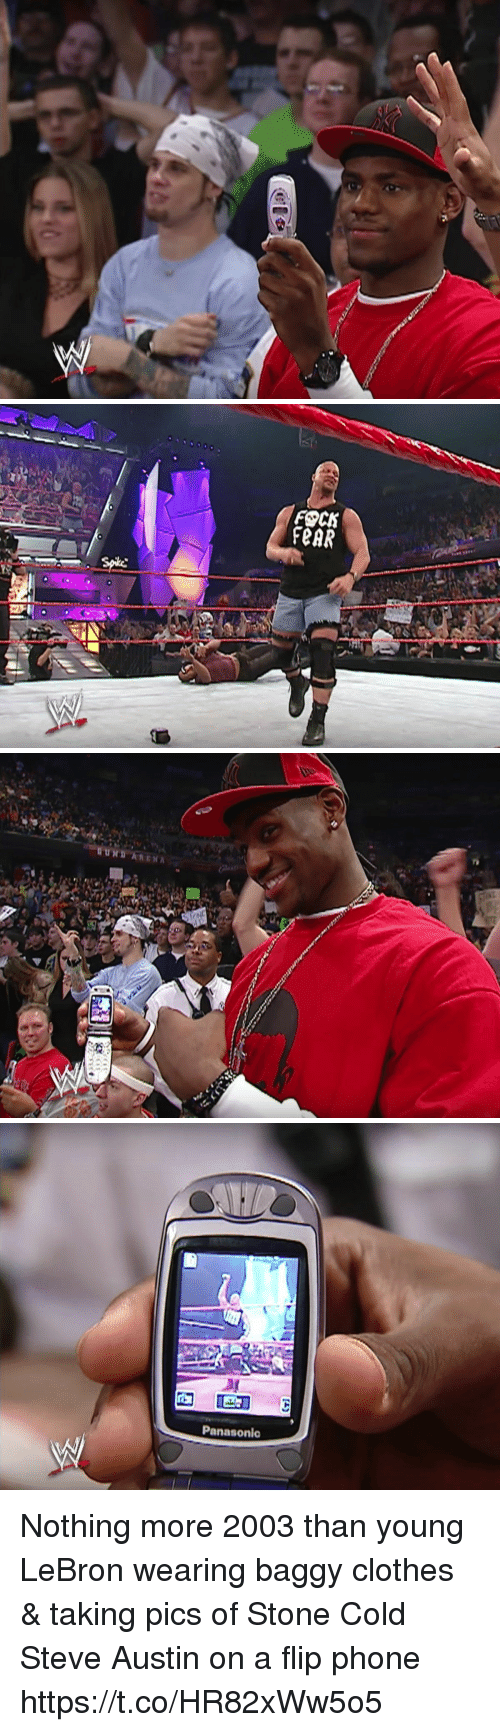 cold-steve-austin: FOCK  FeAR   UND   Panasonic Nothing more 2003 than young LeBron wearing baggy clothes & taking pics of Stone Cold Steve Austin on a flip phone https://t.co/HR82xWw5o5